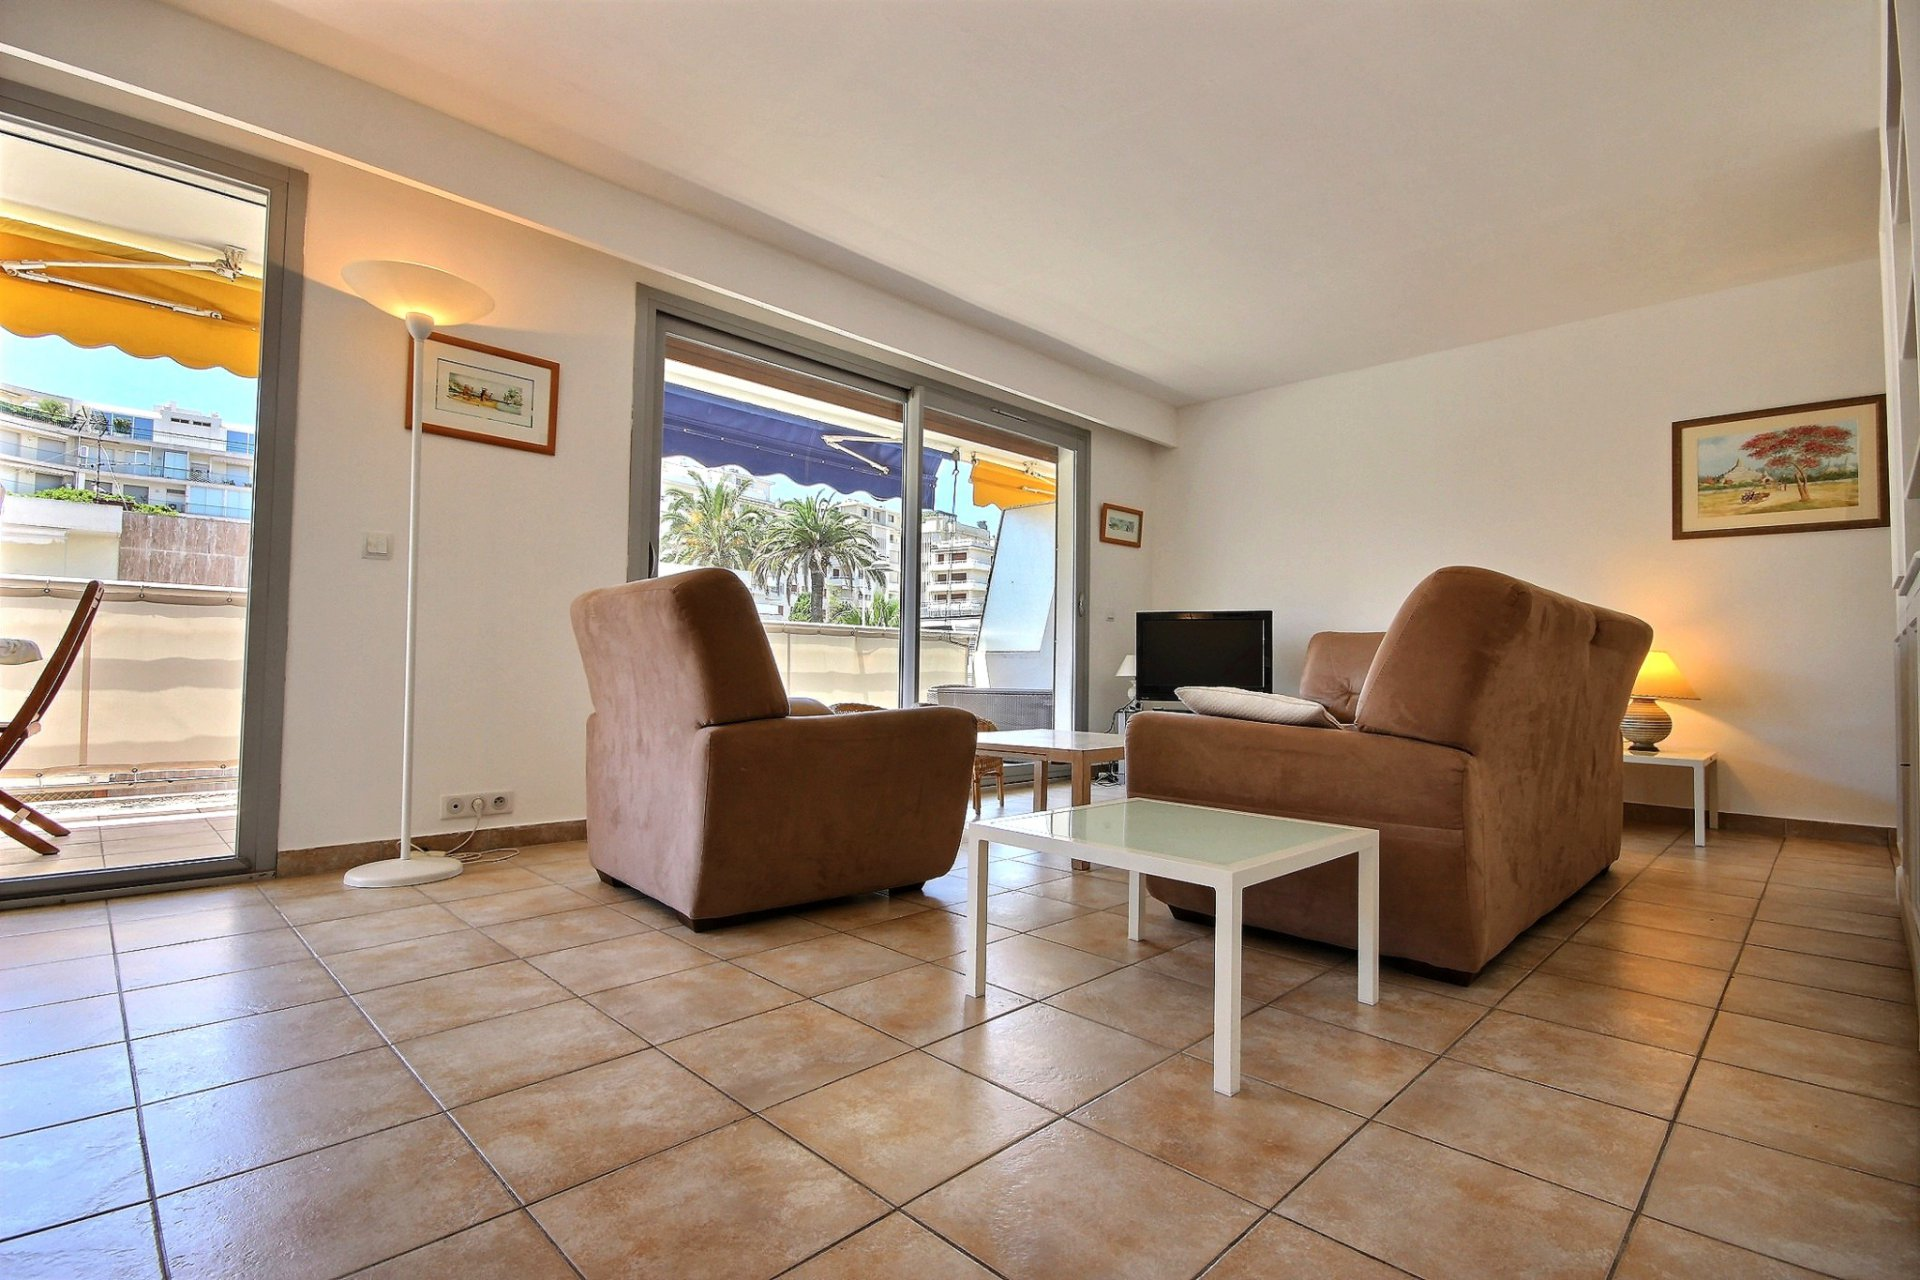 property for sale in cannes palm beach with terrace living room